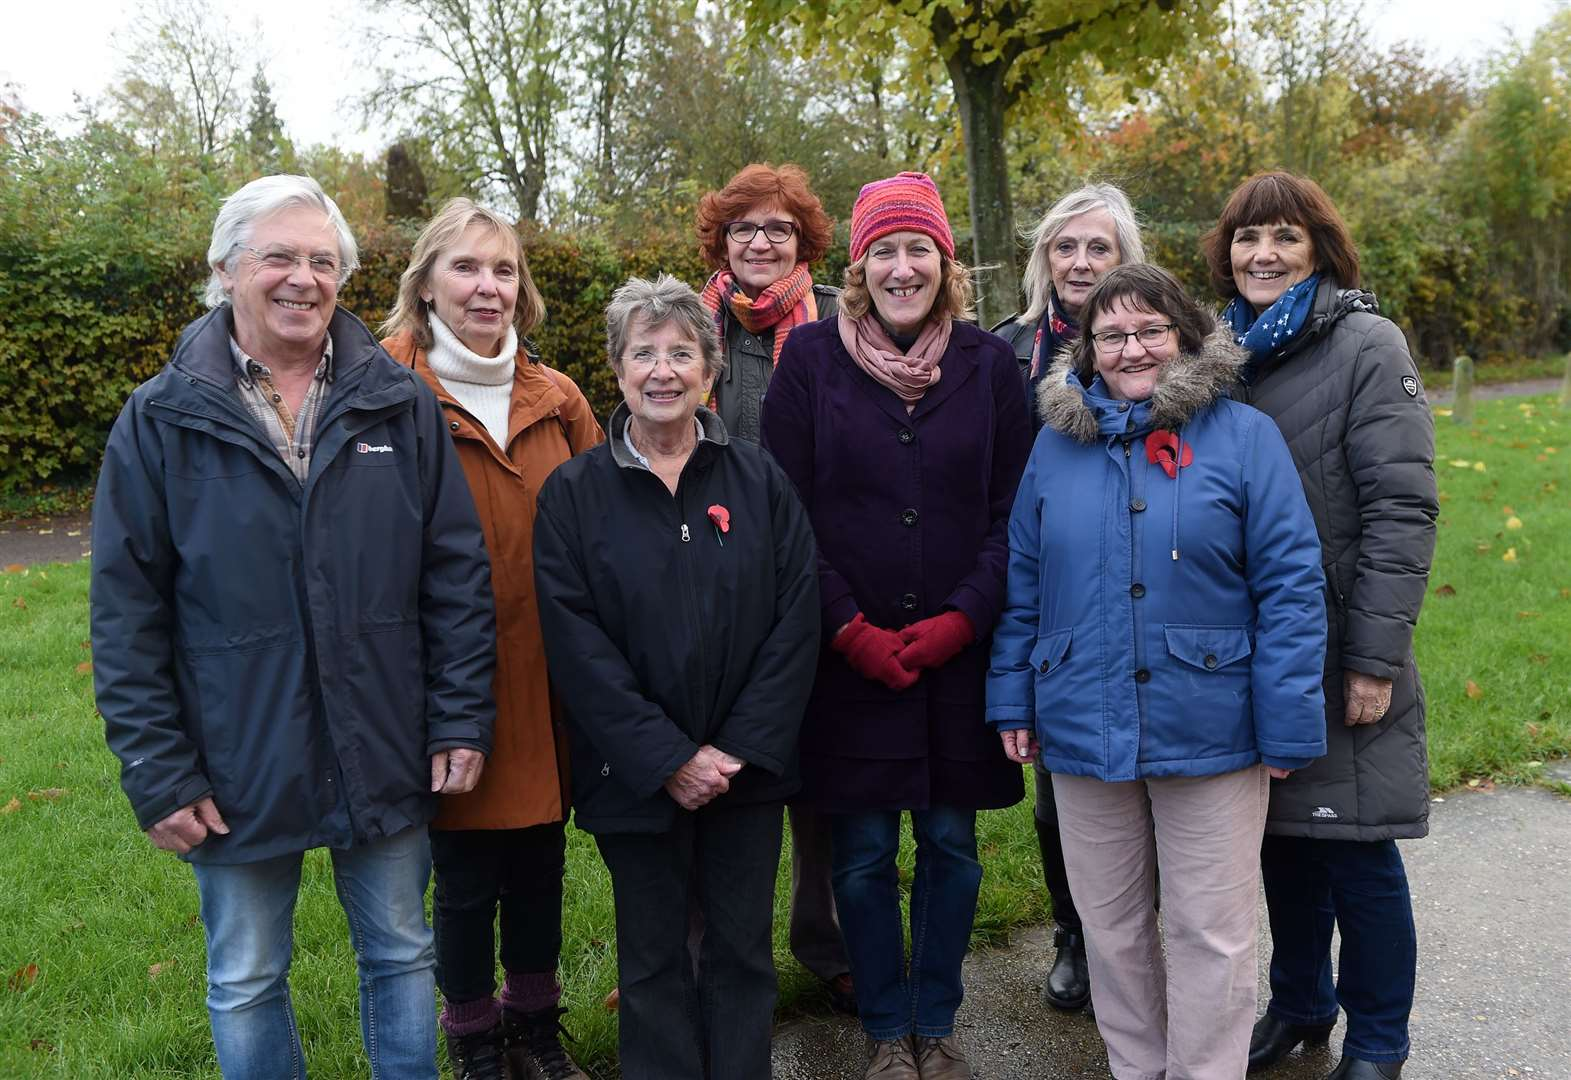 Climate change working party formed in Glemsford after parish council declares emergency